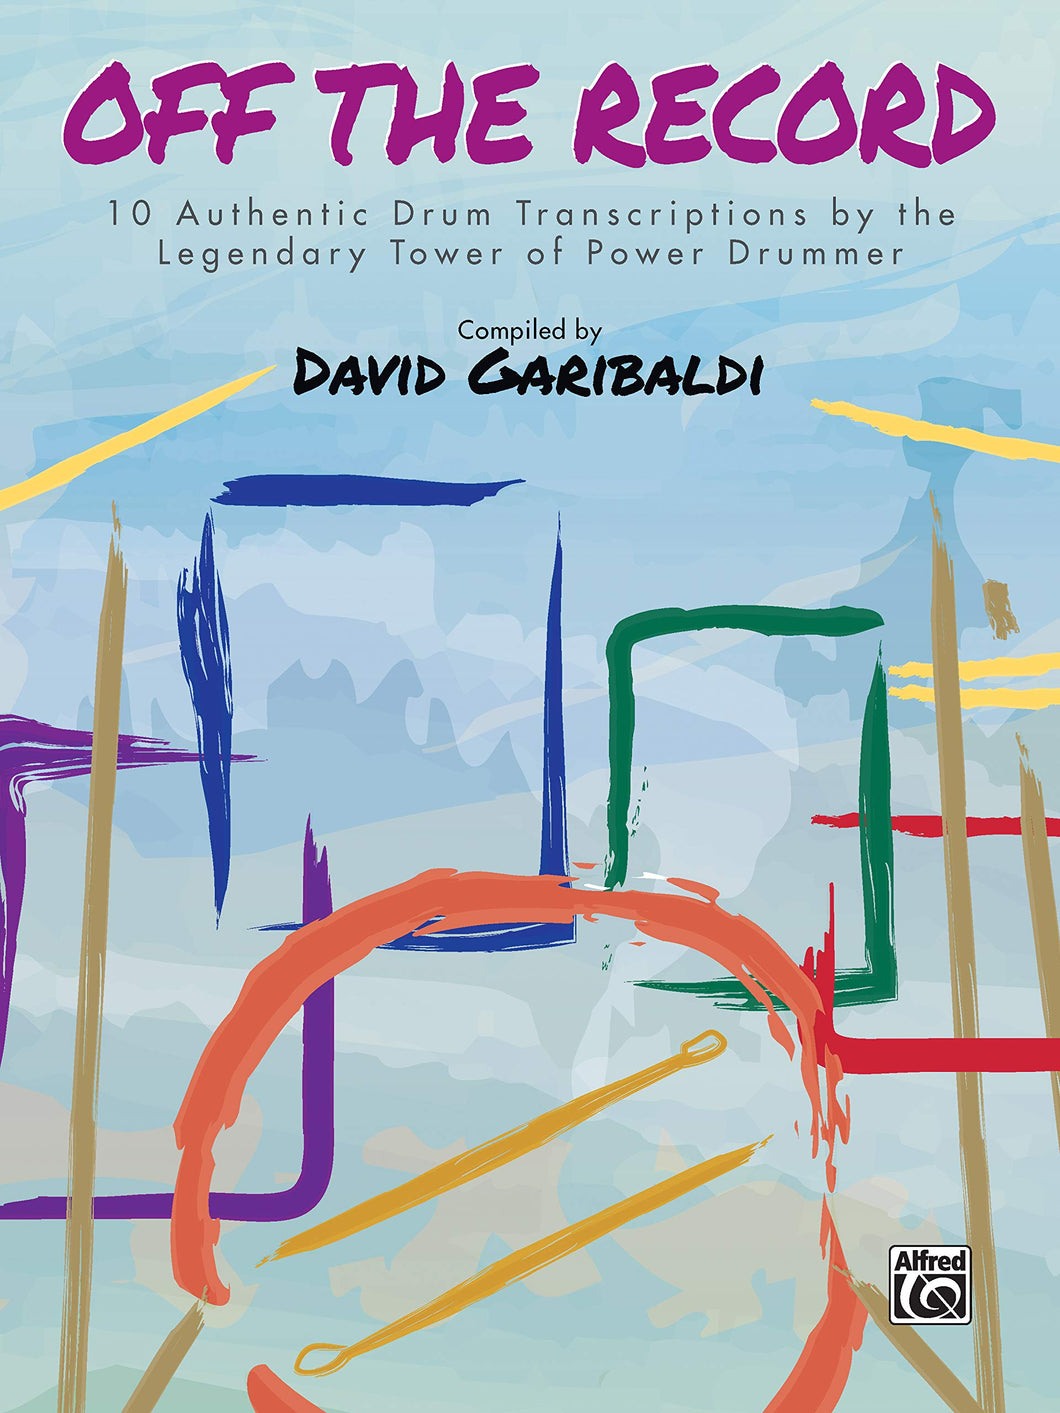 Drum Legend - David Garibaldi - Collection of Drum Transcriptions / Drum Sheet Music - Alfred Music DGOTR